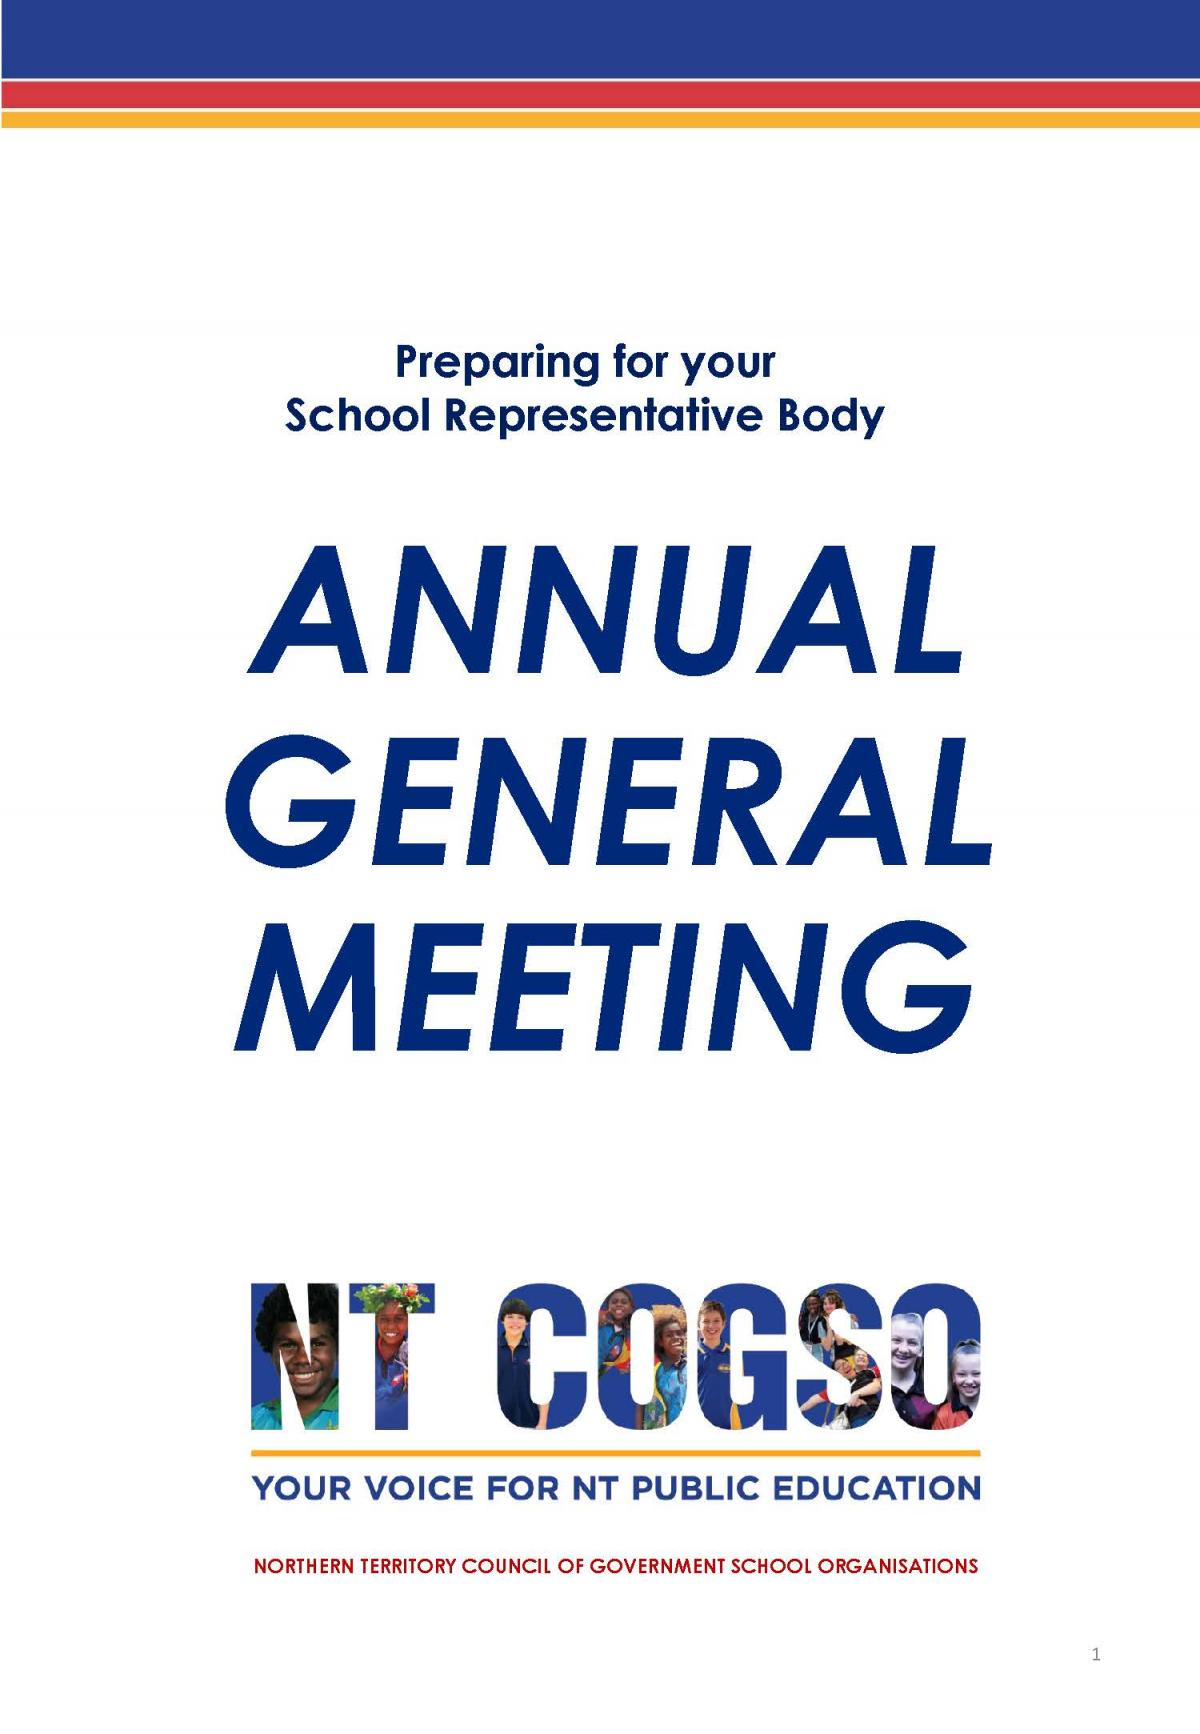 Annual General Meeting Preparation